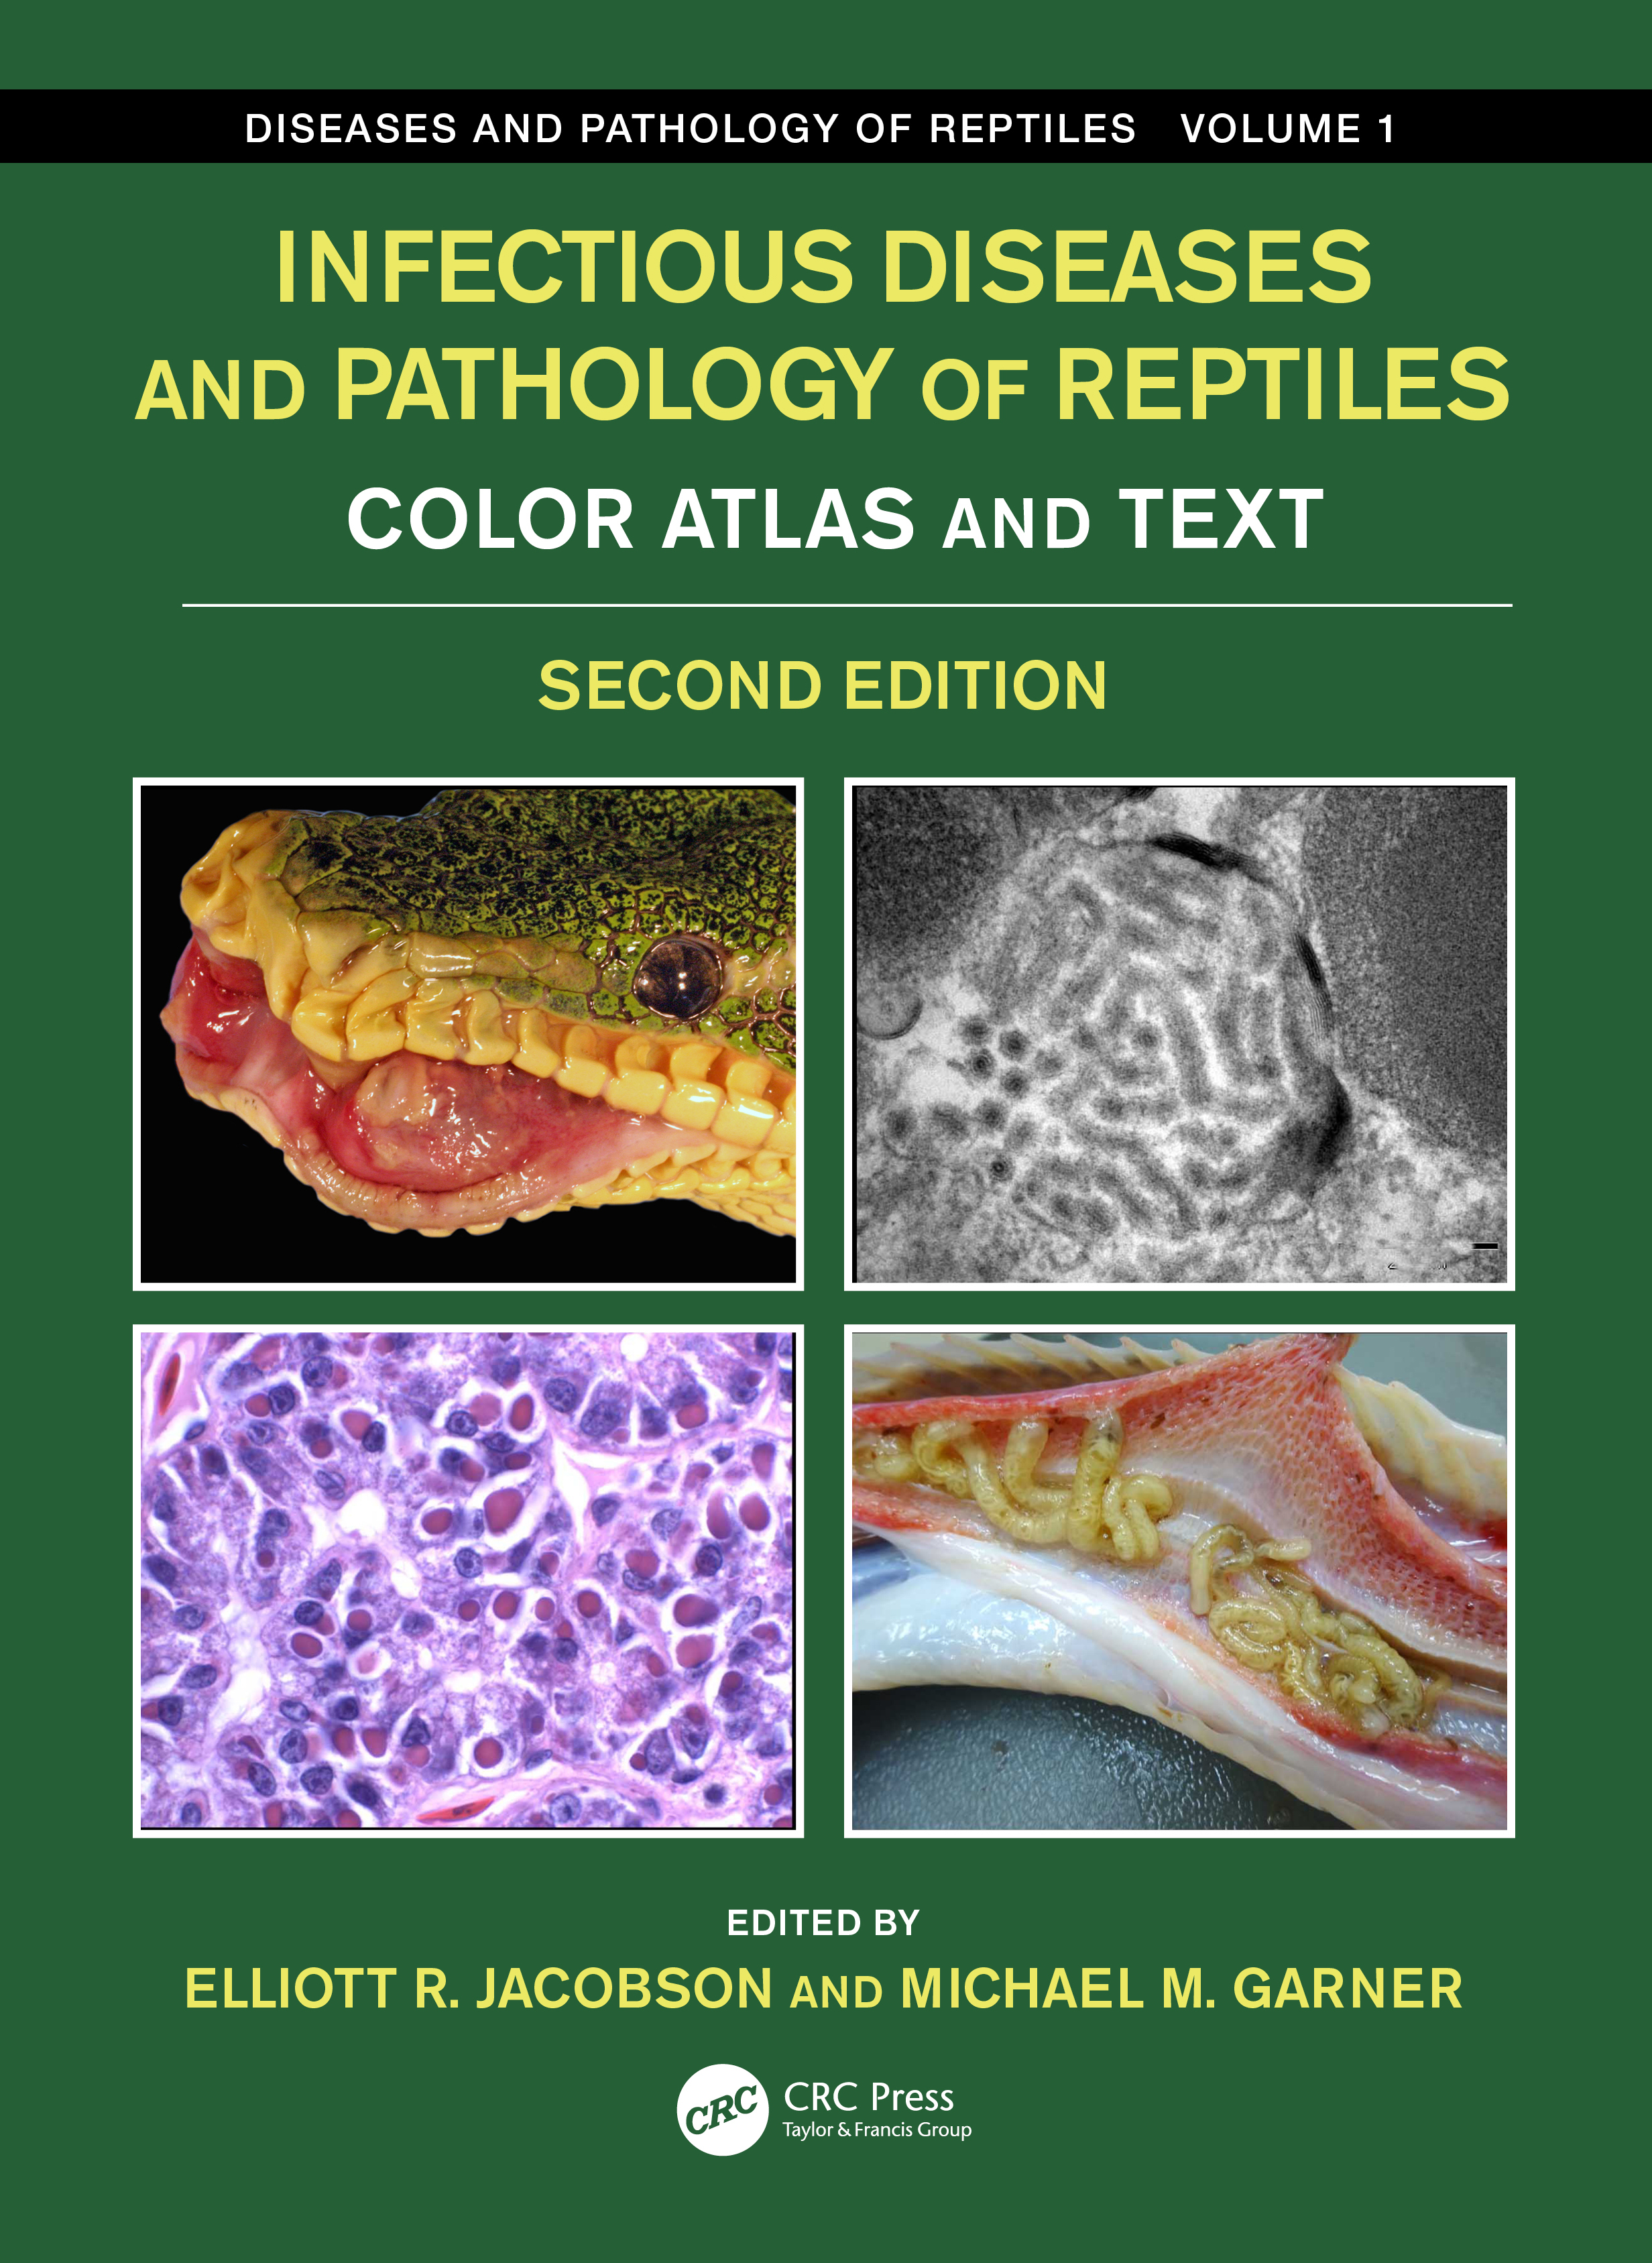 Infectious Diseases and Pathology of Reptiles: Color Atlas and Text, Diseases and Pathology of Reptiles Volume 1 book cover